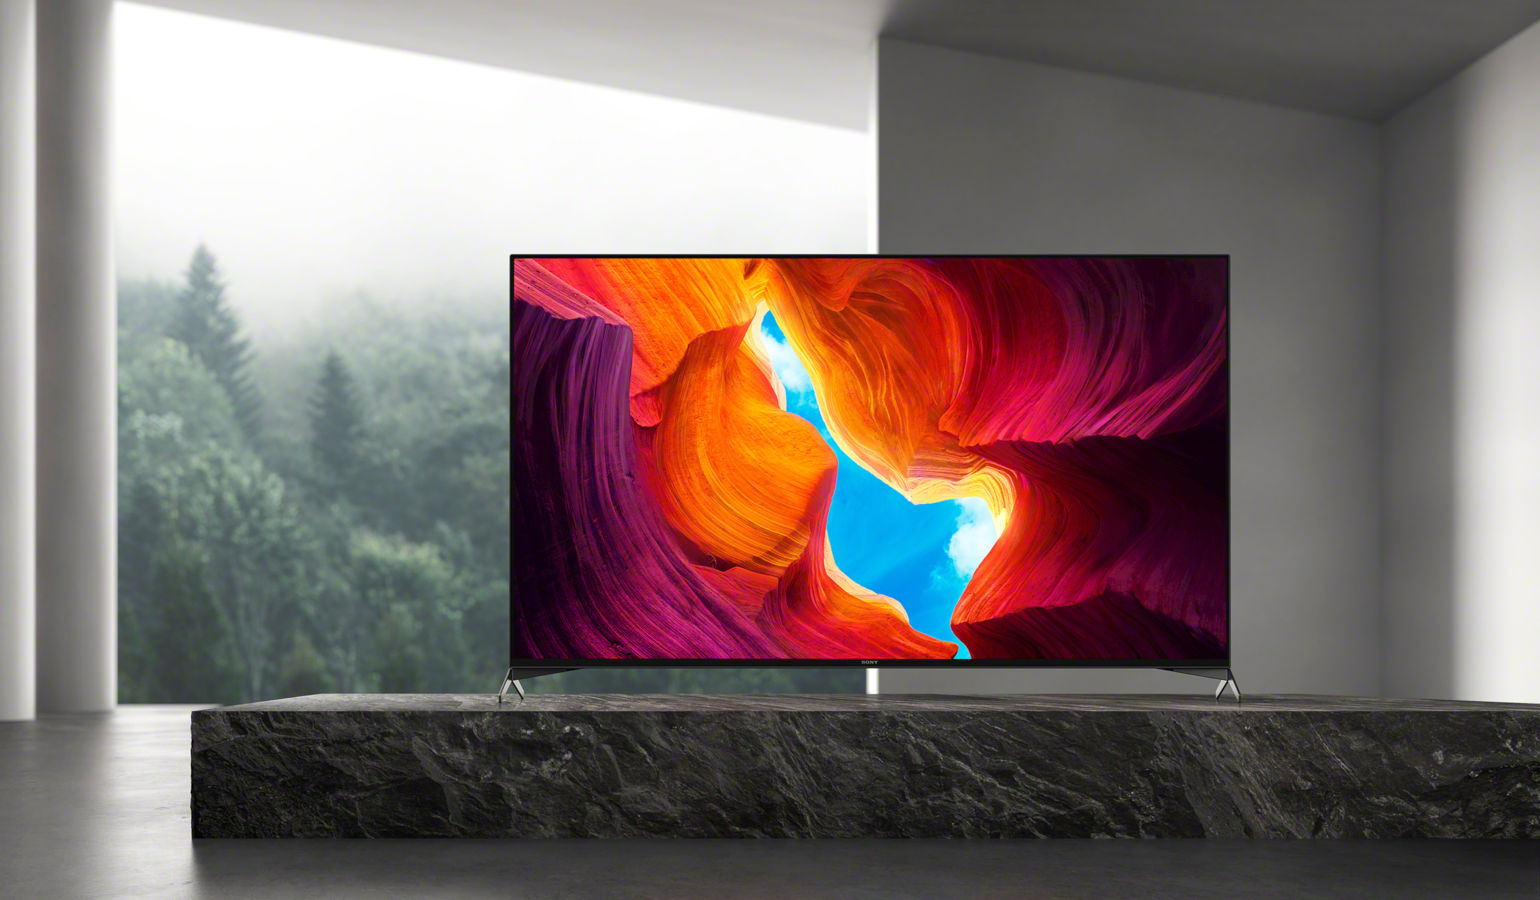 Review: Sony KD-55XH9505 (XH95 series) LCD LED TV